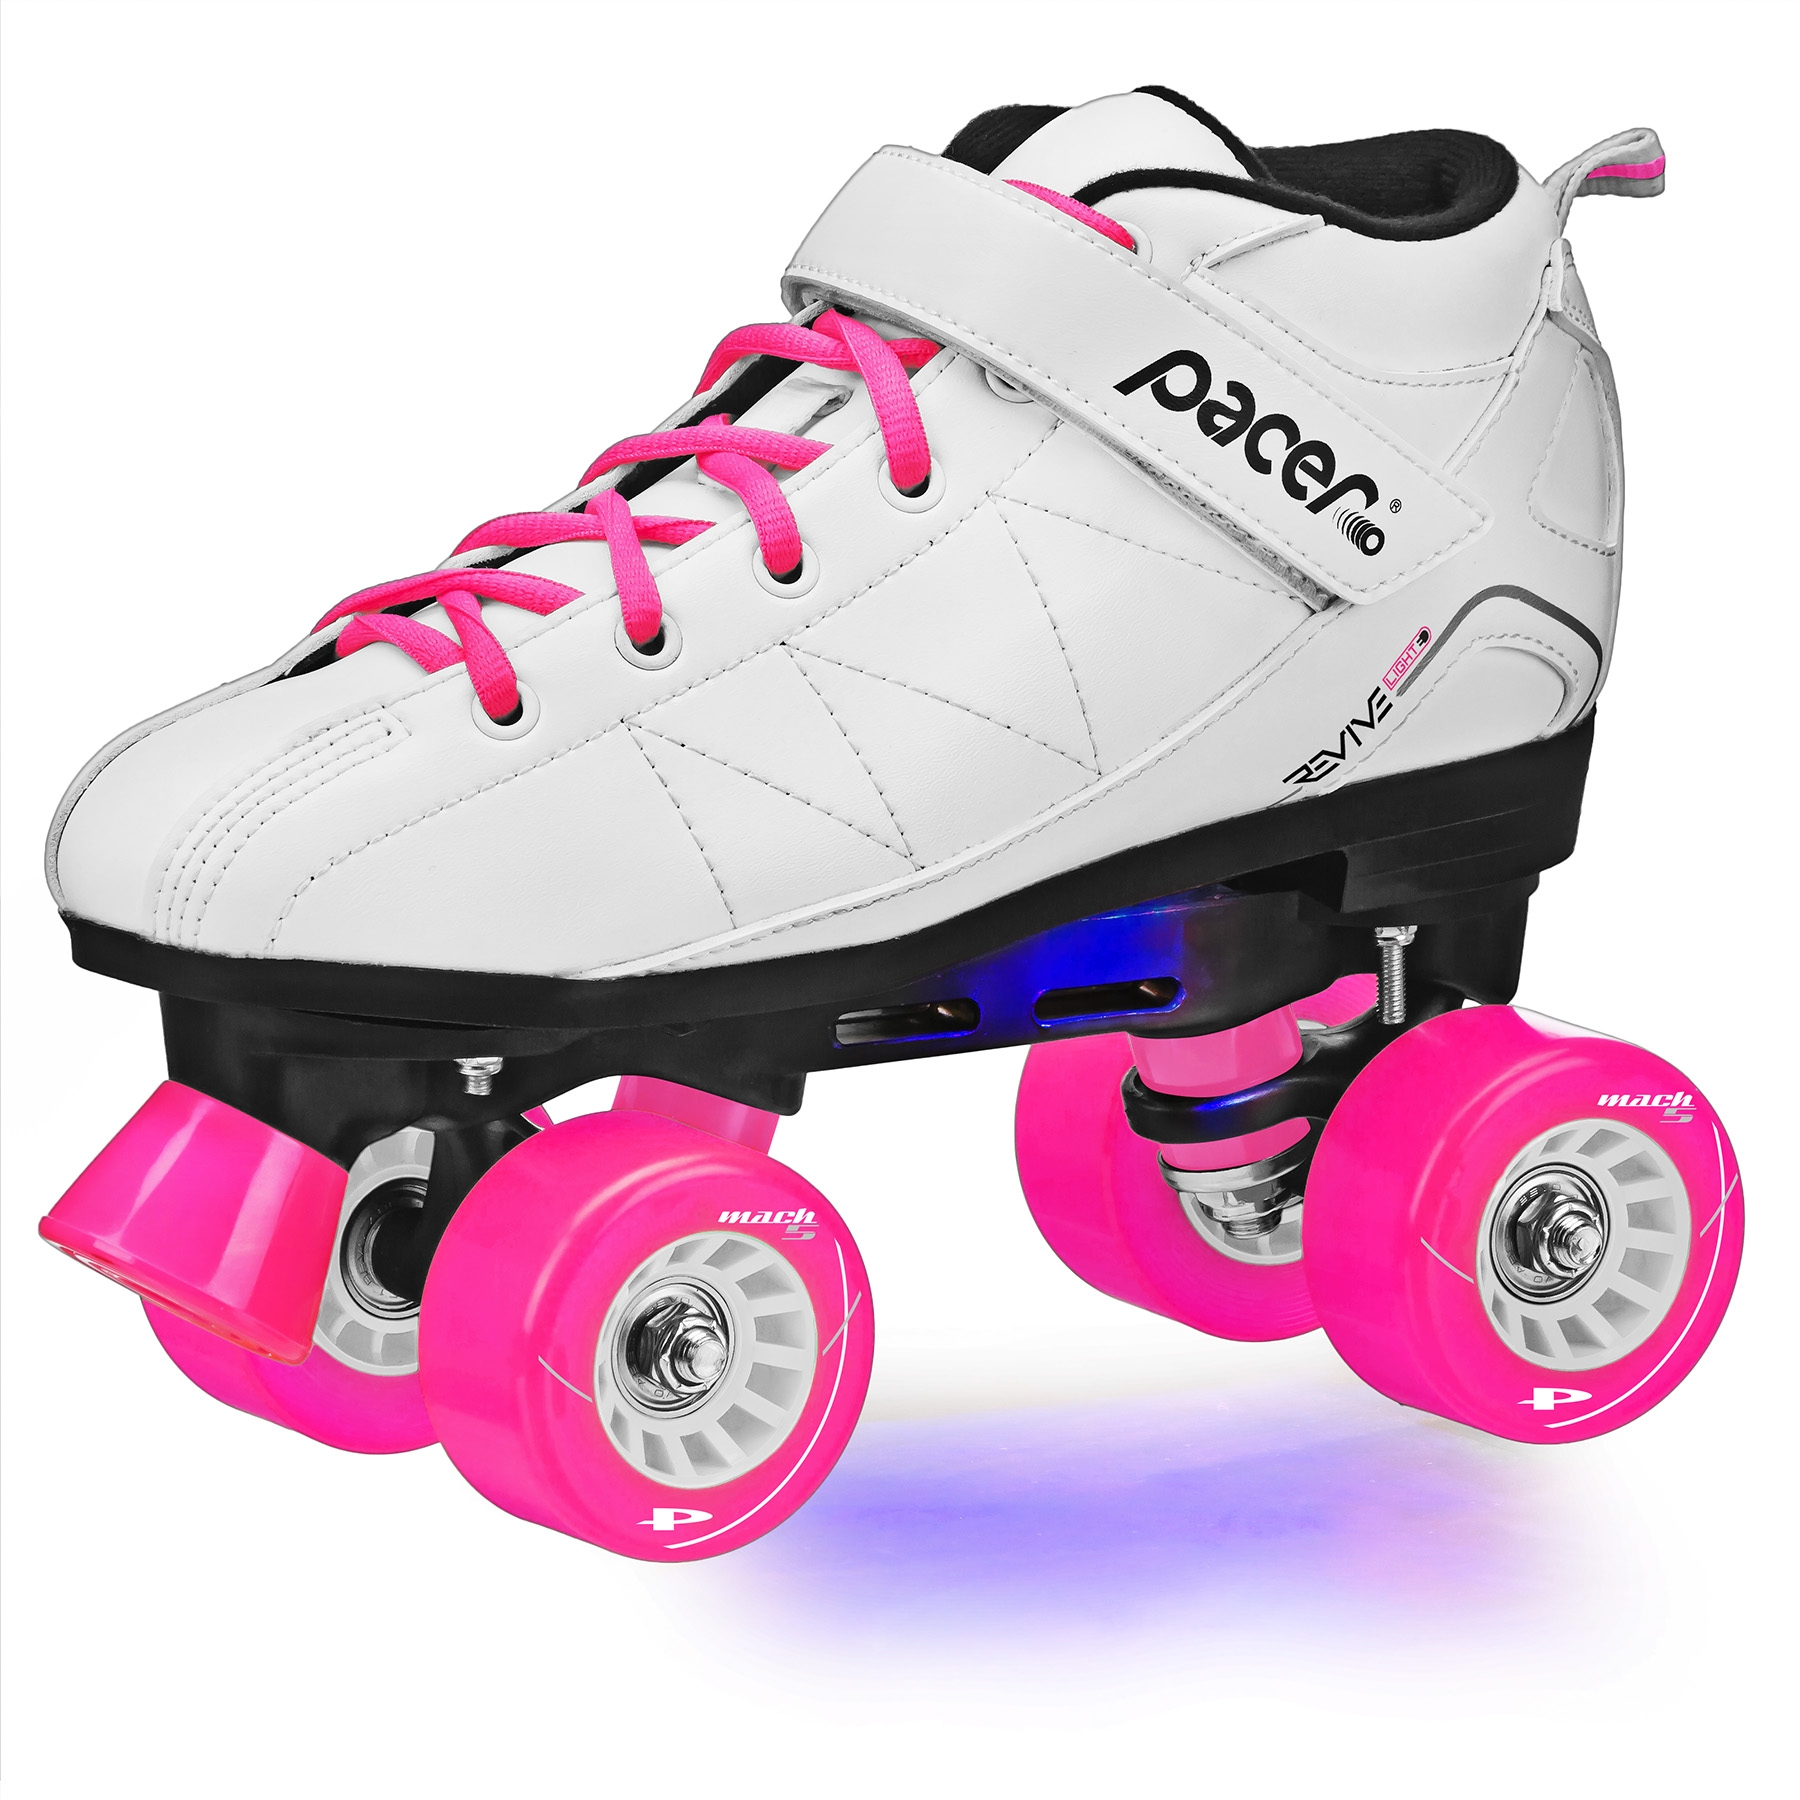 INSTOCK! Last ones! Pacer Revive Light-Up Rink Skates